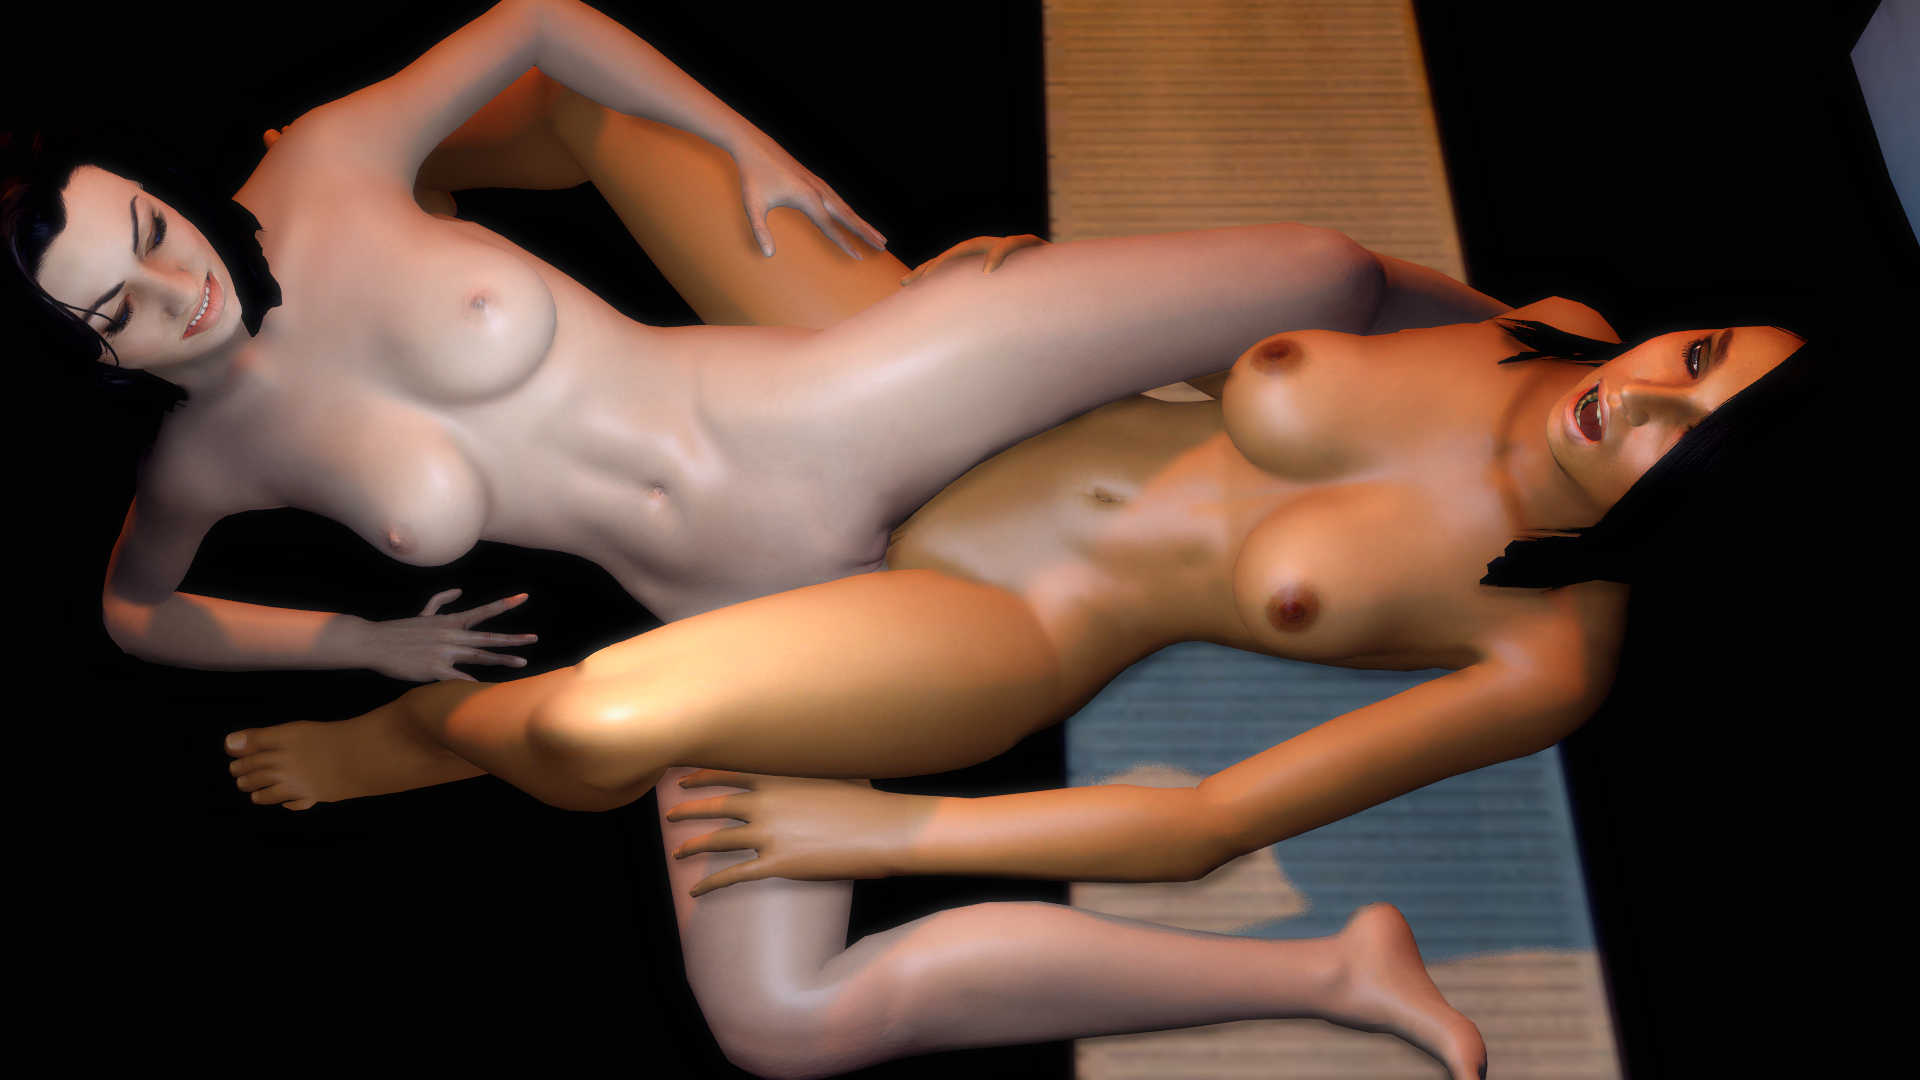 Mass effect 2 miranda sex naked fucked pictures